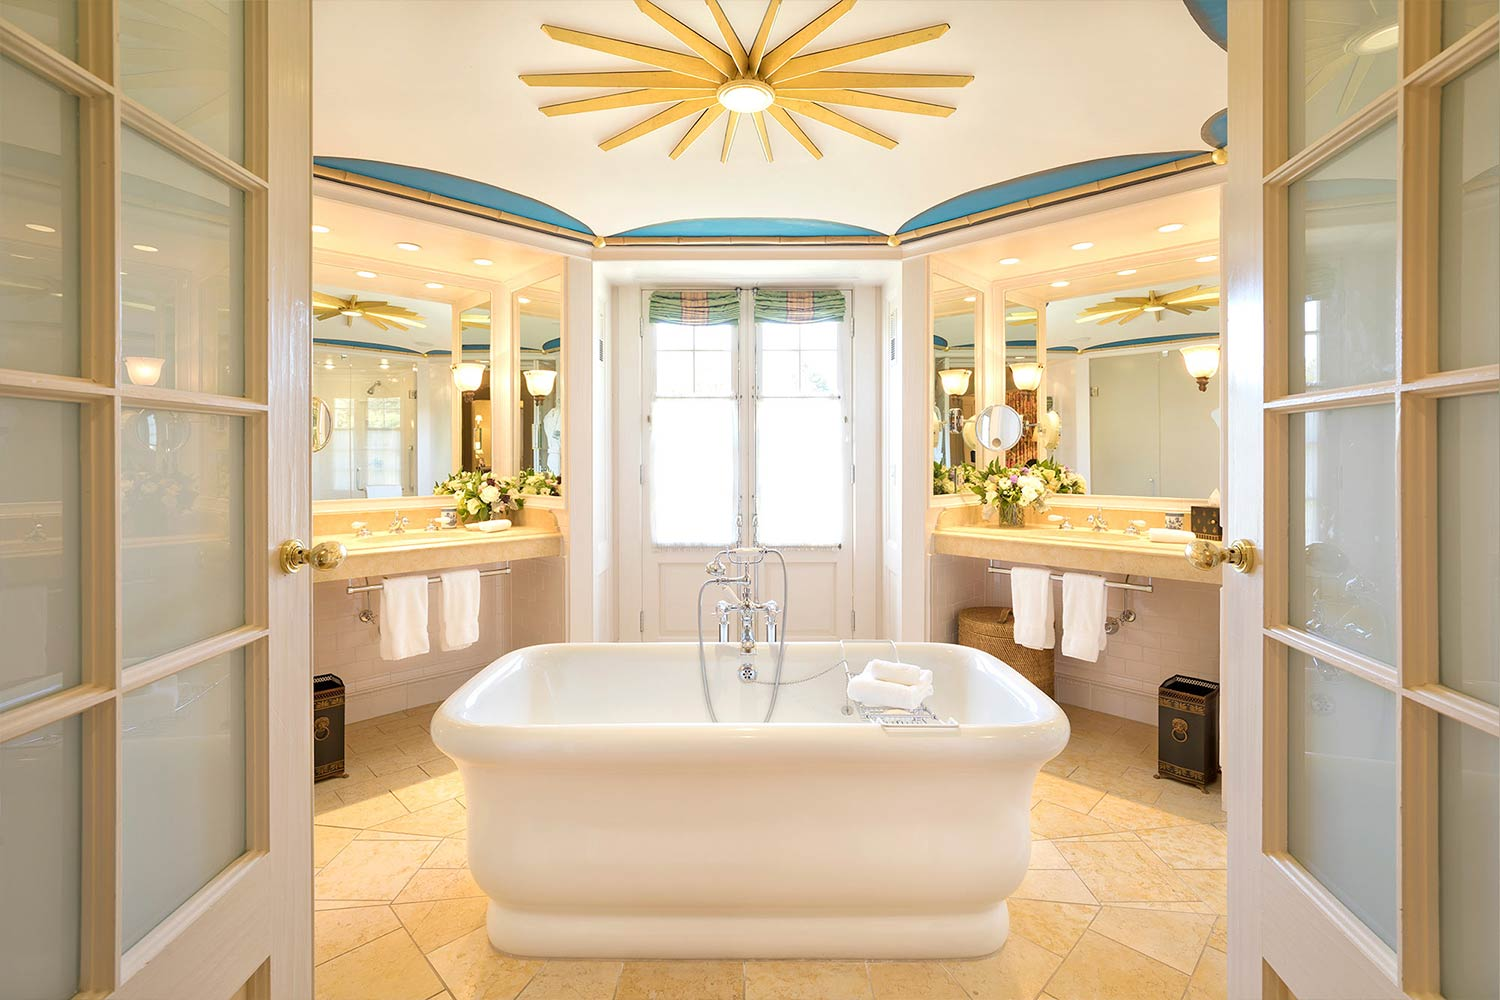 The spa like bathroom of Room 16 featuring a soaking tub in the middle of a spacious, hexagonal room.